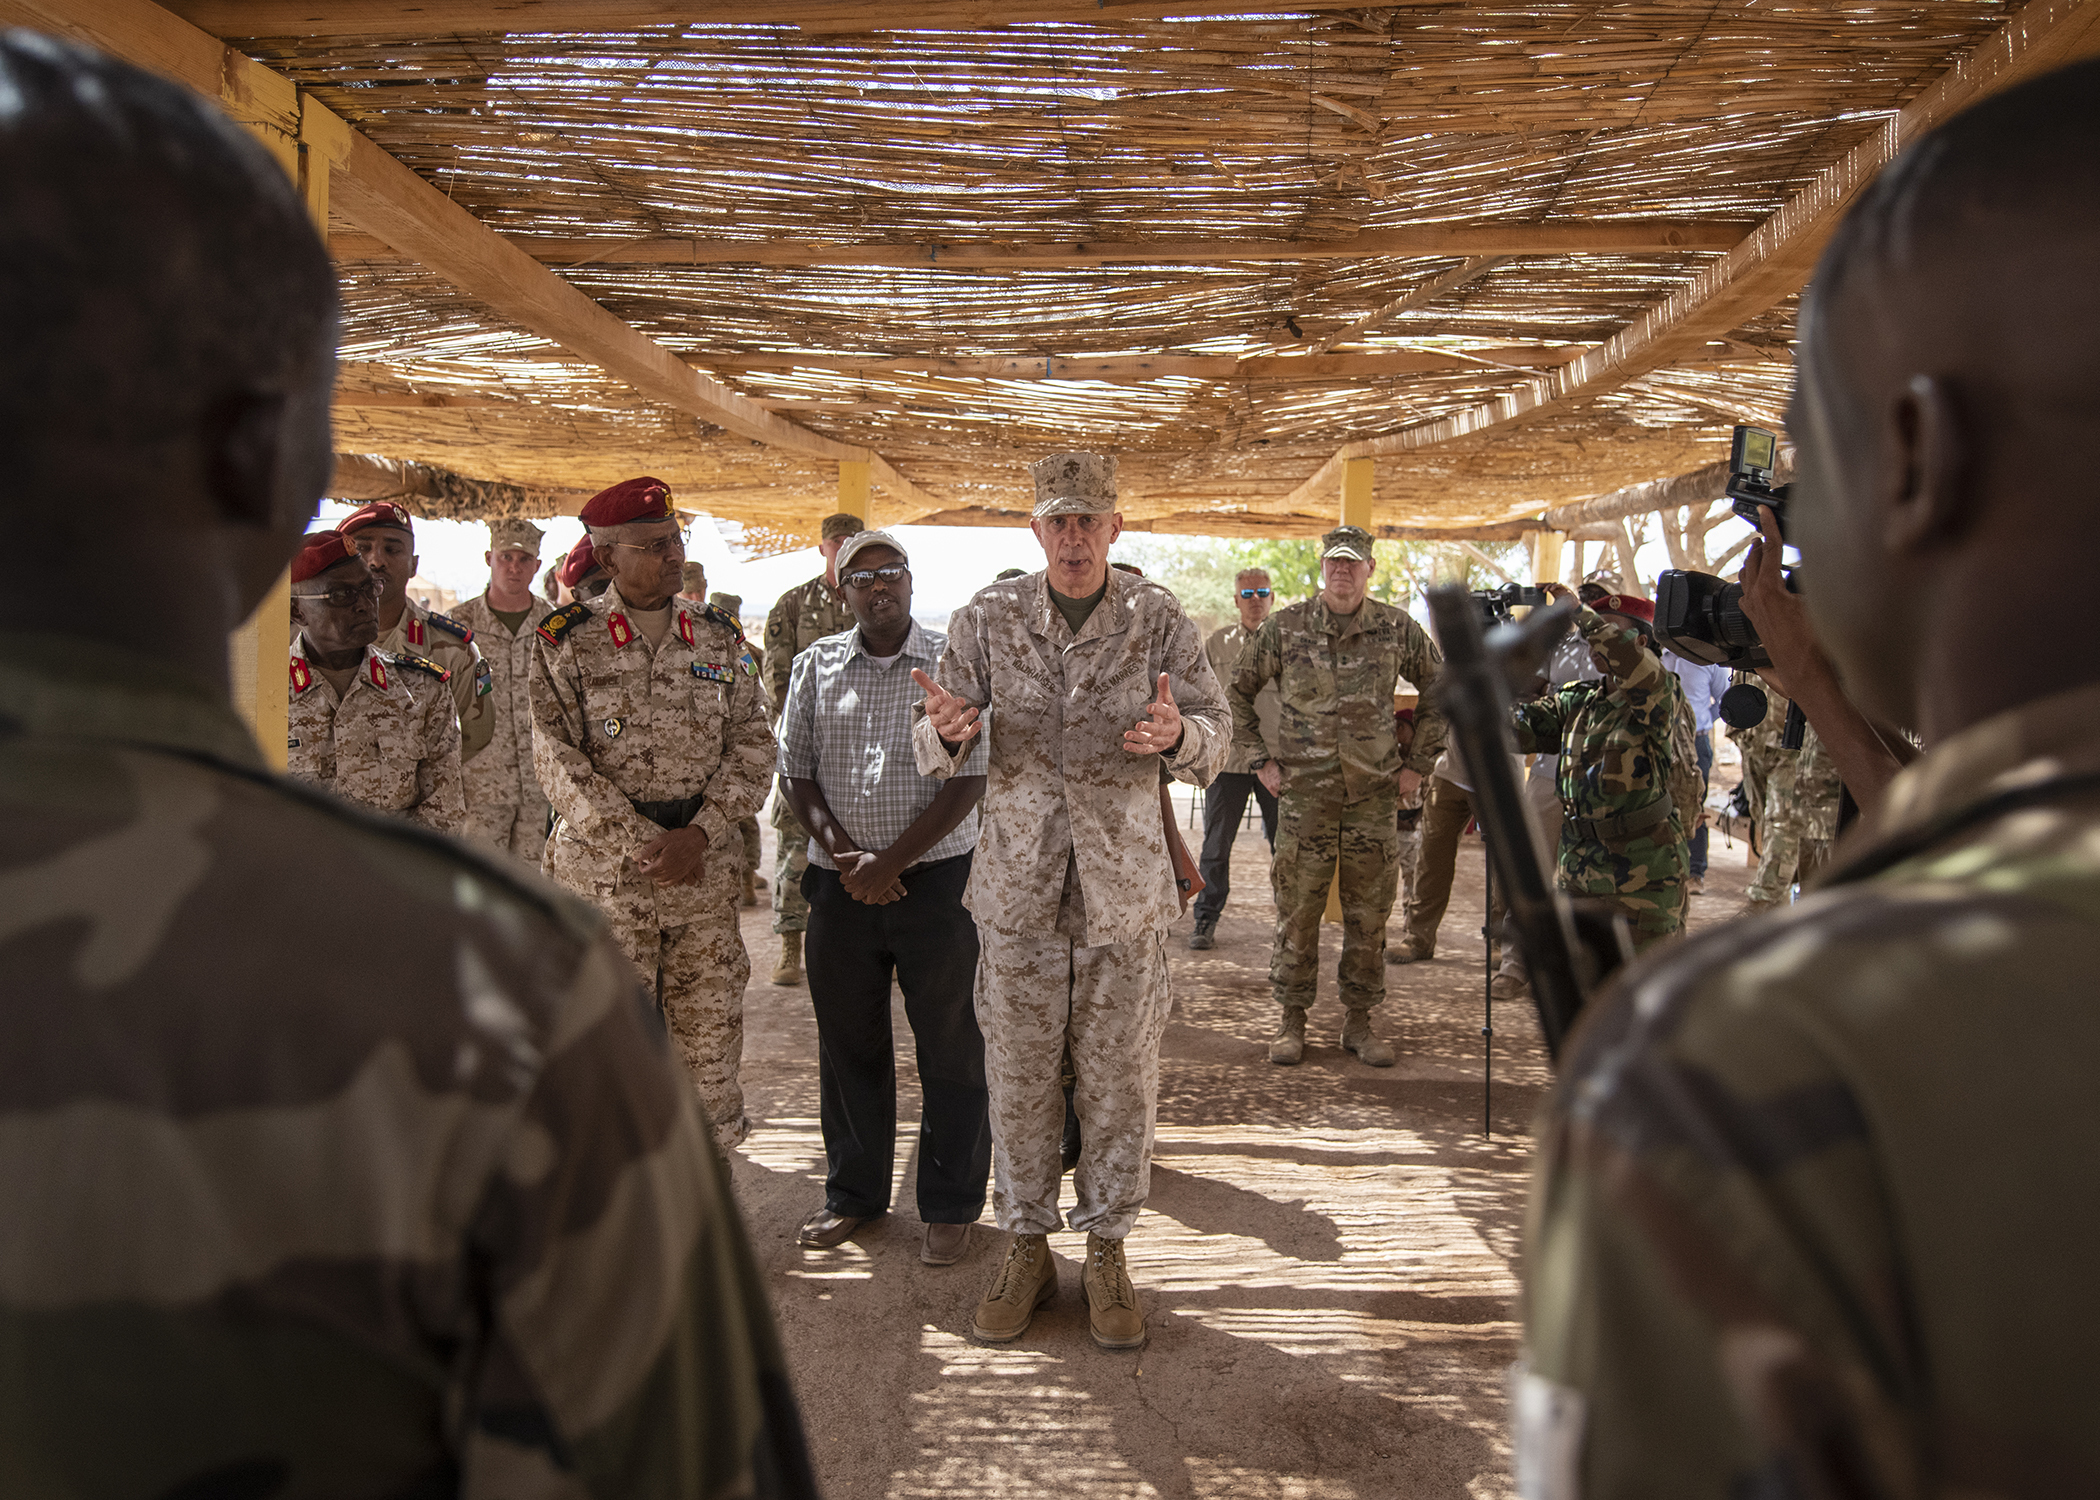 U.S. Marine Corps Gen. Thomas D. Waldhauser, commander of U.S. Africa Command, speaks to soldiers from the Djiboutian army's elite military force, the Rapid Intervention Battalion, after a tactical demonstration during a visit with senior Djiboutian officials, including Chief of General Staff of the Djibouti Armed Forces Zakaria Cheik Ibrahim, at a training base in Djibouti, March 21, 2019. Waldhauser visited in order to discuss the growth and development of Djiboutian security forces. (U.S. Air Force photo by Tech. Sgt. Shawn Nickel)